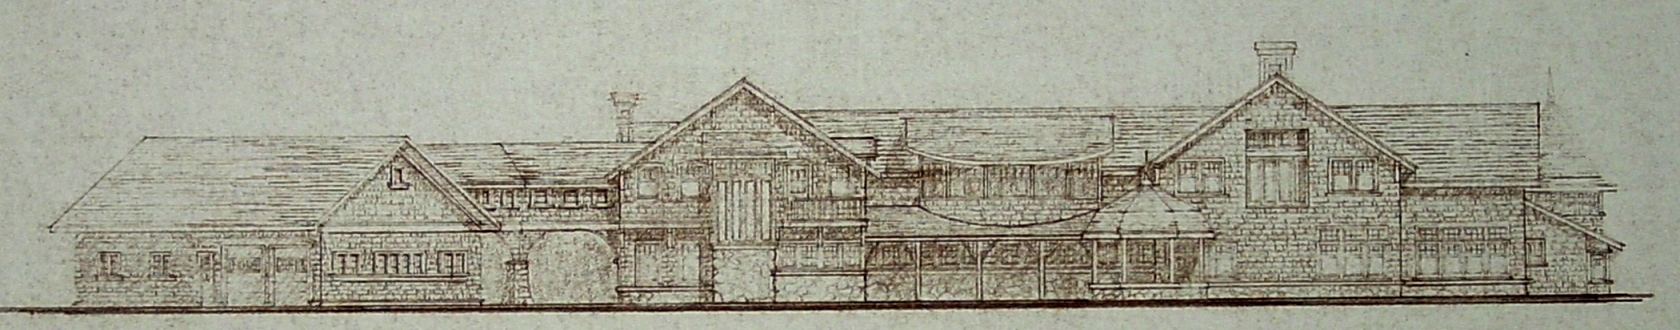 Design study for large Lodge Residence